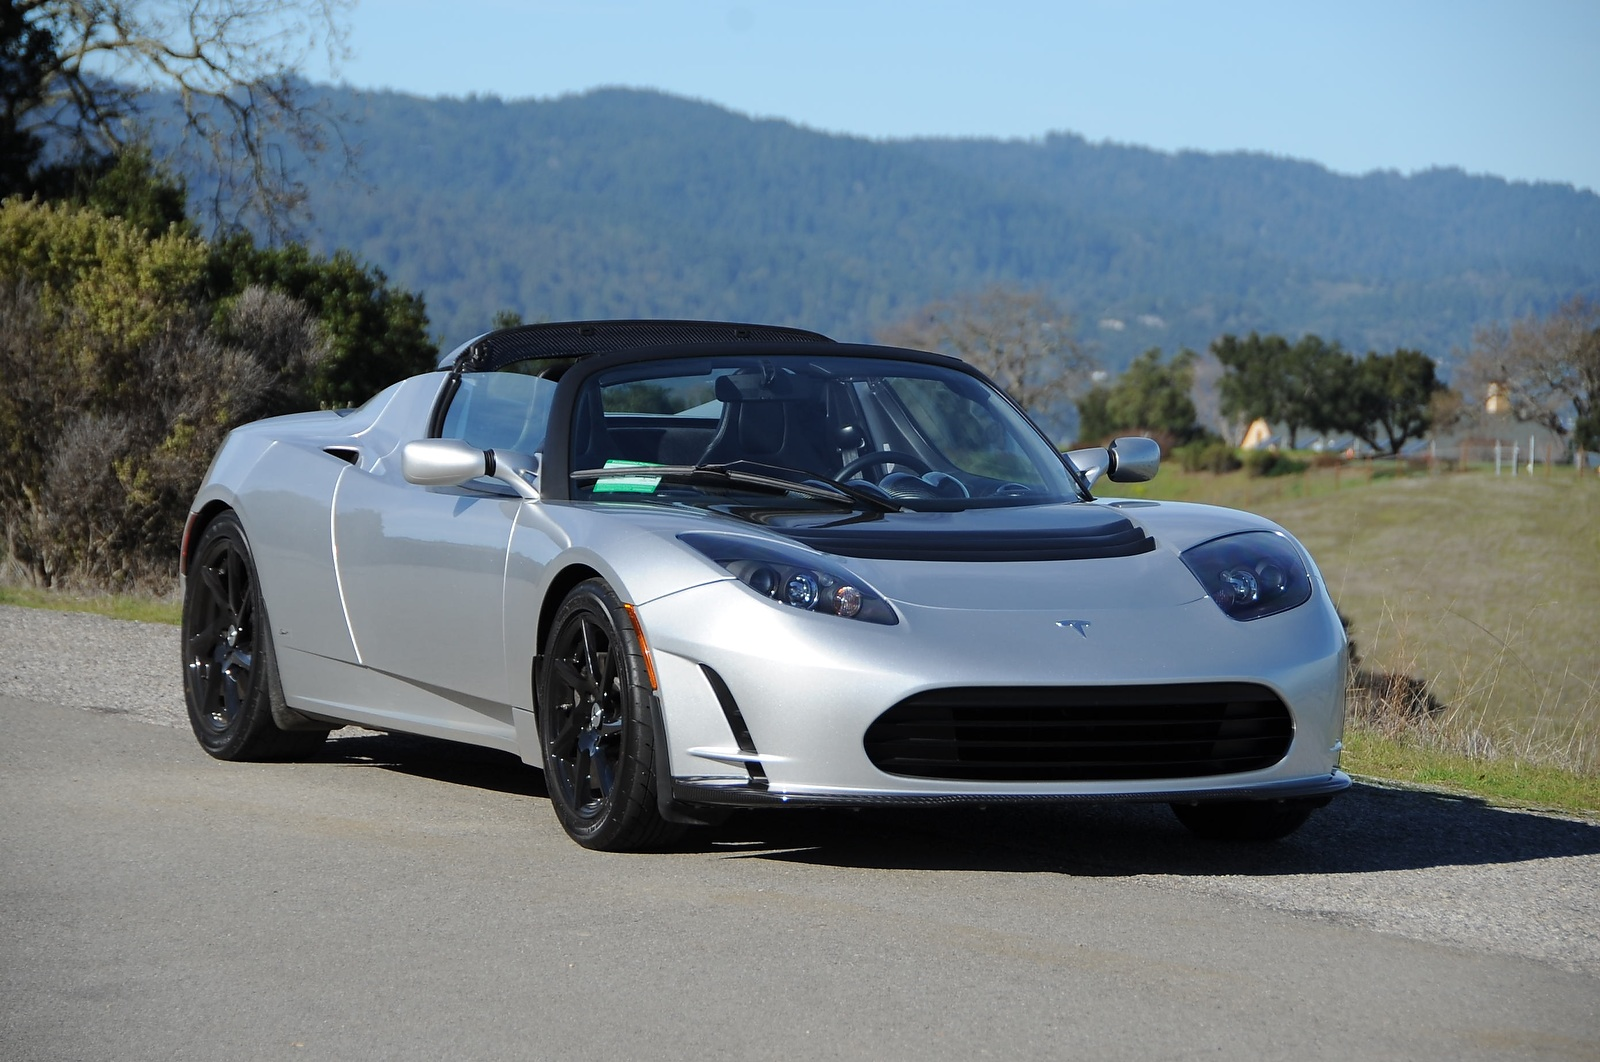 new tesla car release dateTesla Roadster 30 70kWh Battery Aero Kit New Tires For 400